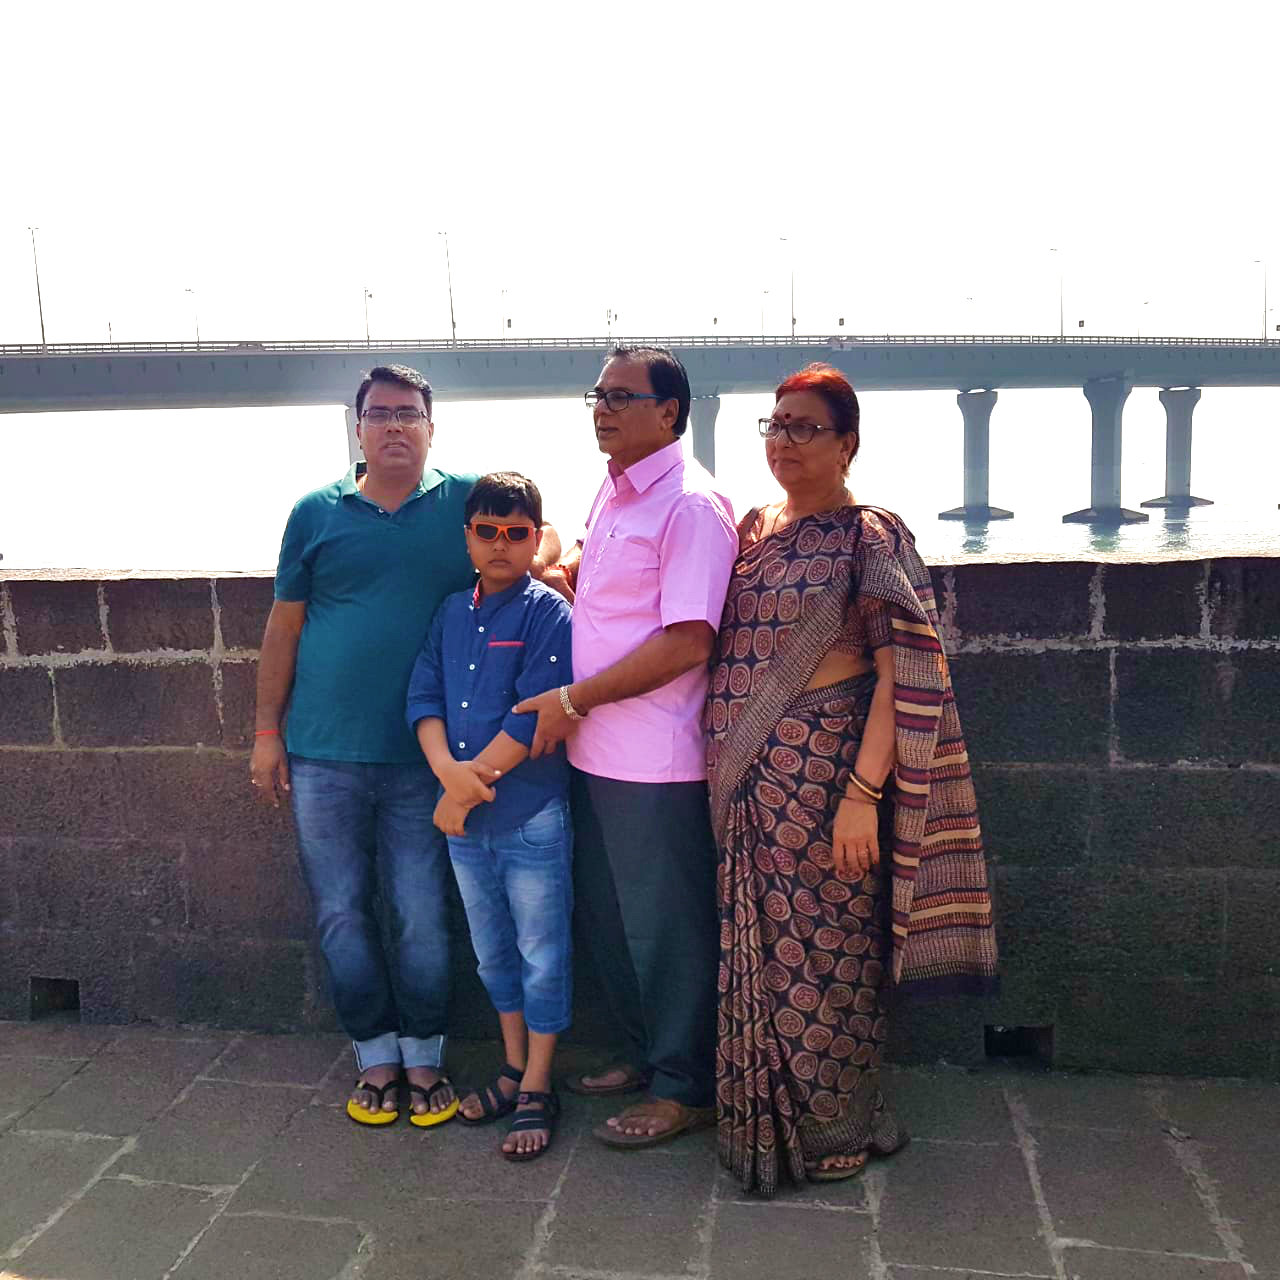 Mr. & Mrs.Madhepuri along with their grandson Aditya & his father Dr.Barun standing near Sea-Soar where a Big & Beautiful Road Bridge one can see joining North & South Mumbai.